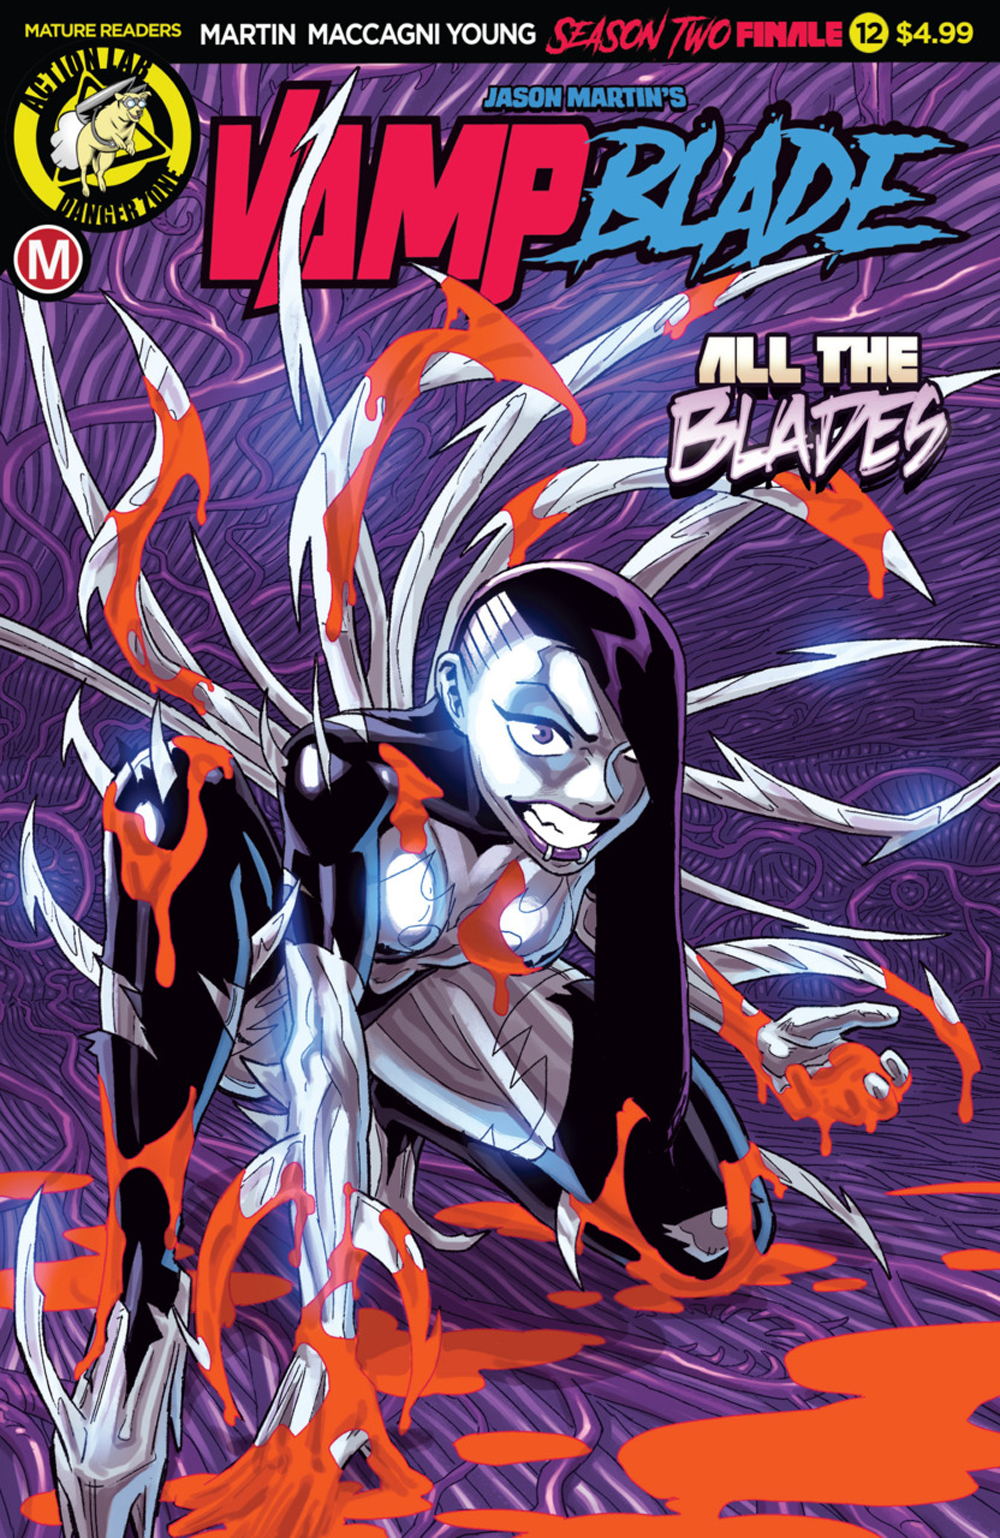 VAMPBLADE SEASON TWO #12 CVR A WINSTON YOUNG